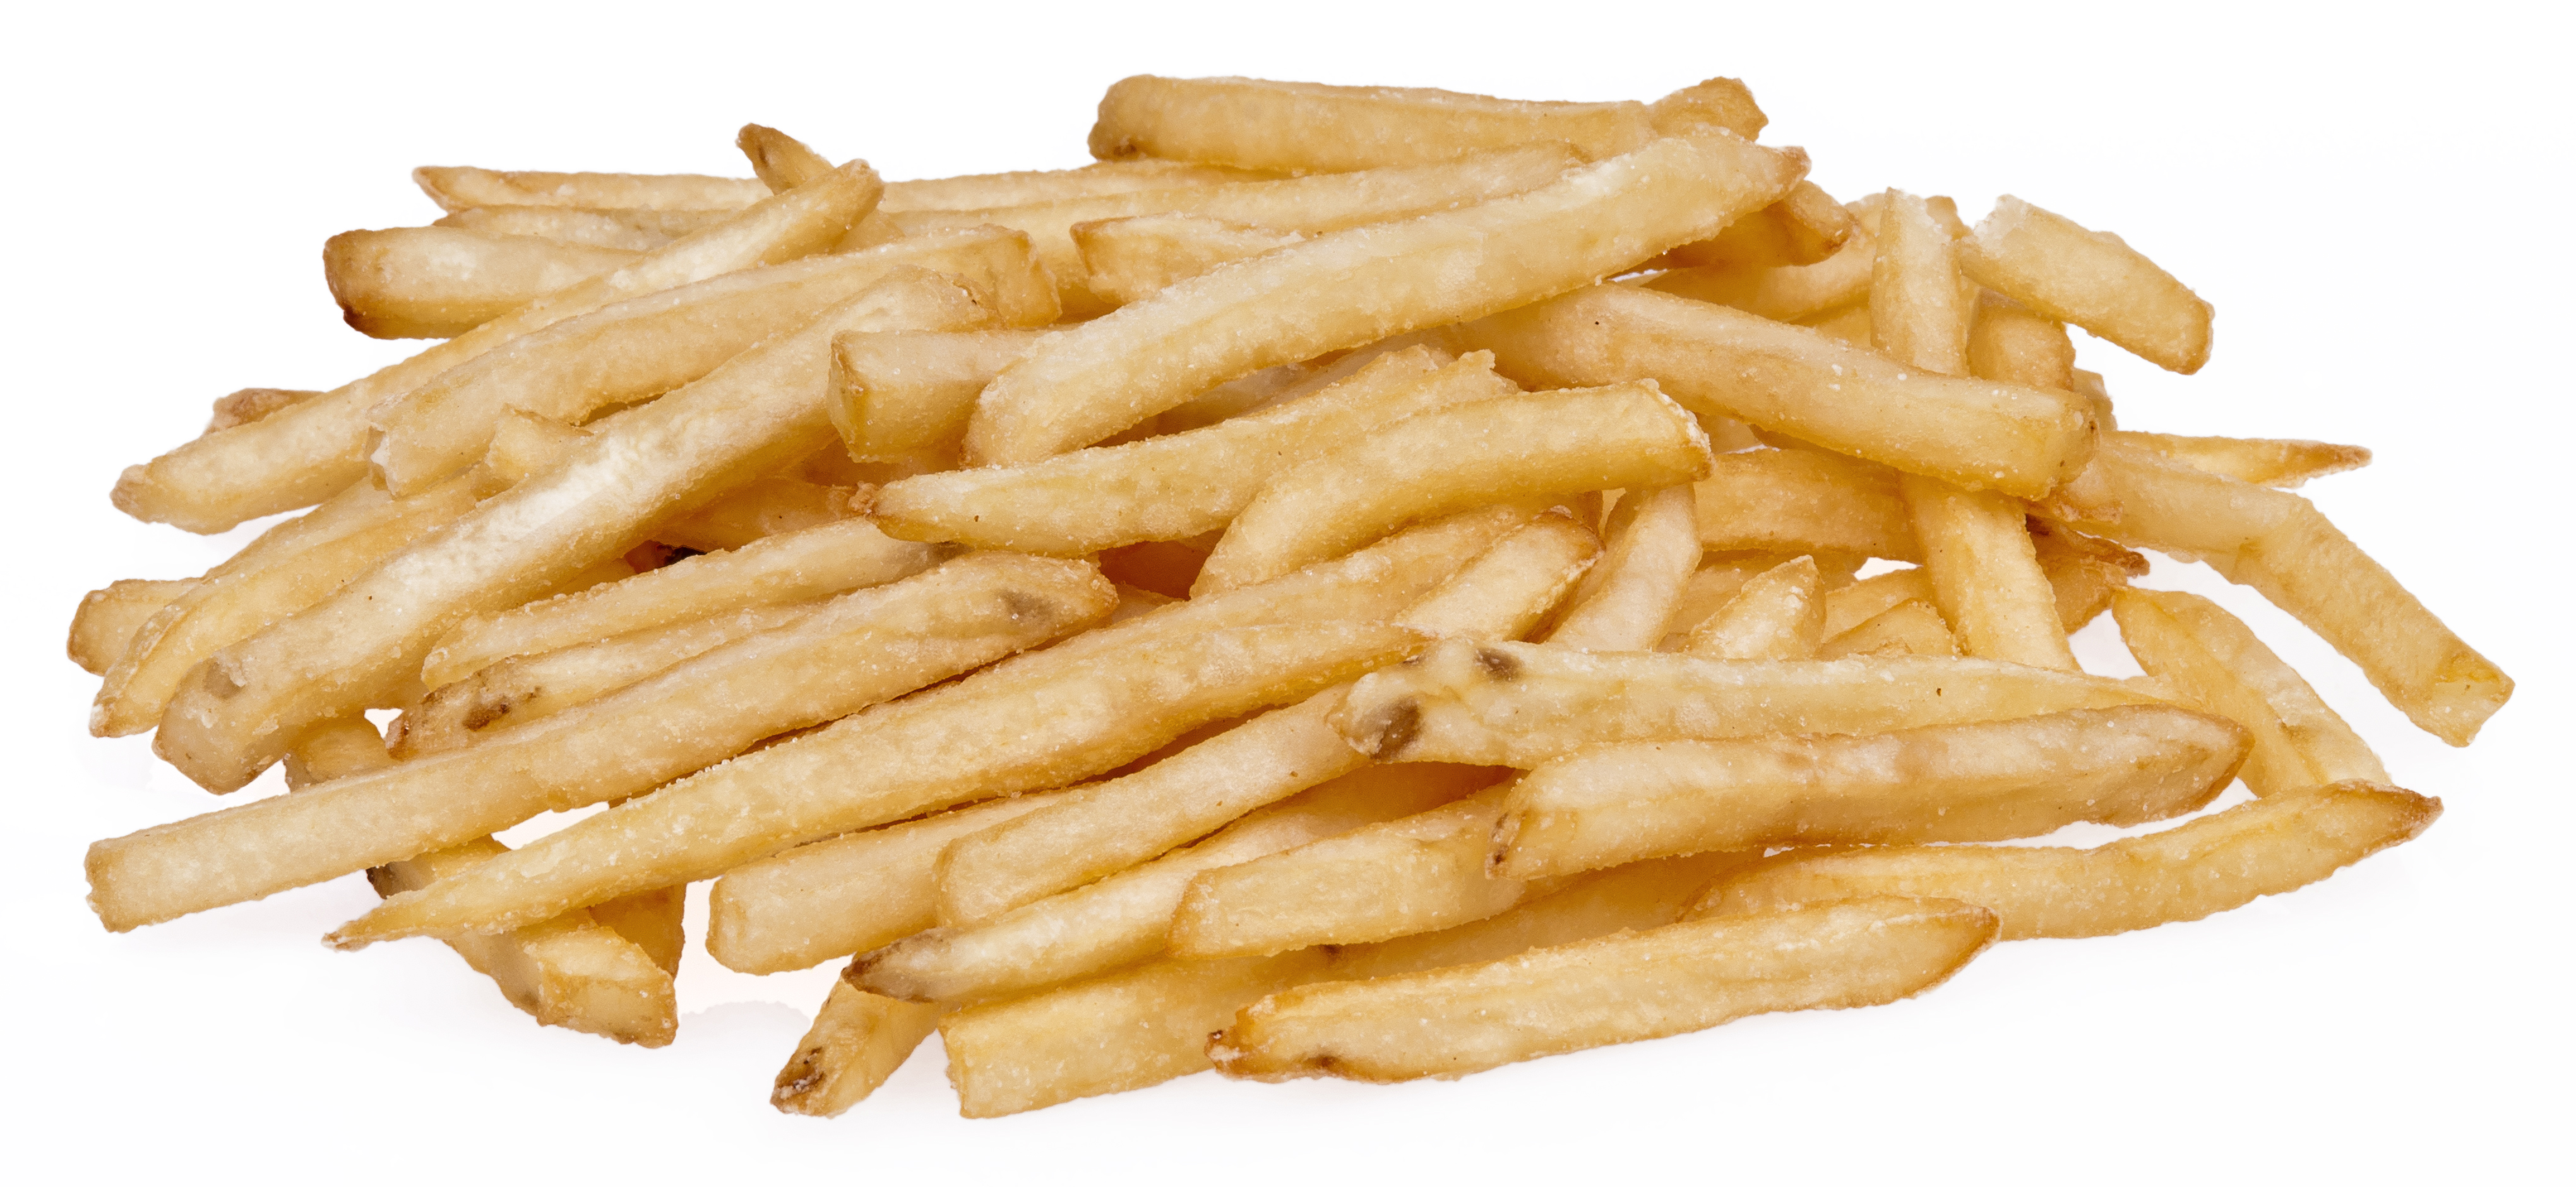 On Giving: French Fries | Church Development